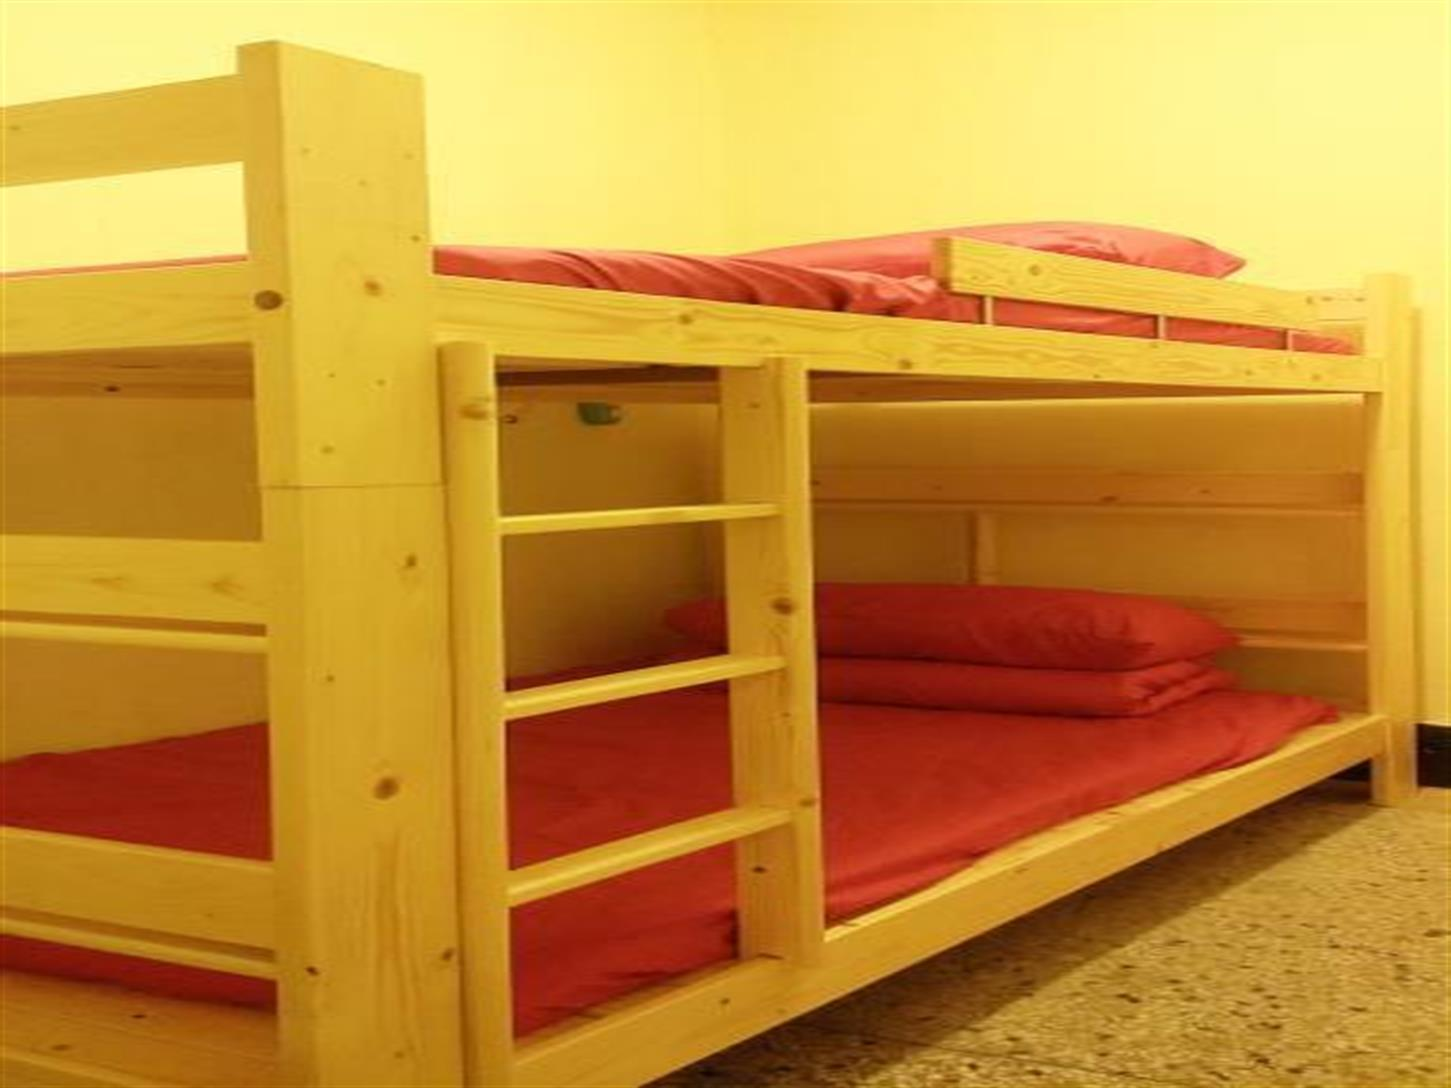 1 persona en habitación compartida de 2 camas ‒ Sólo mujeres (1 Person in 2-Bed Dormitory - Female Only)